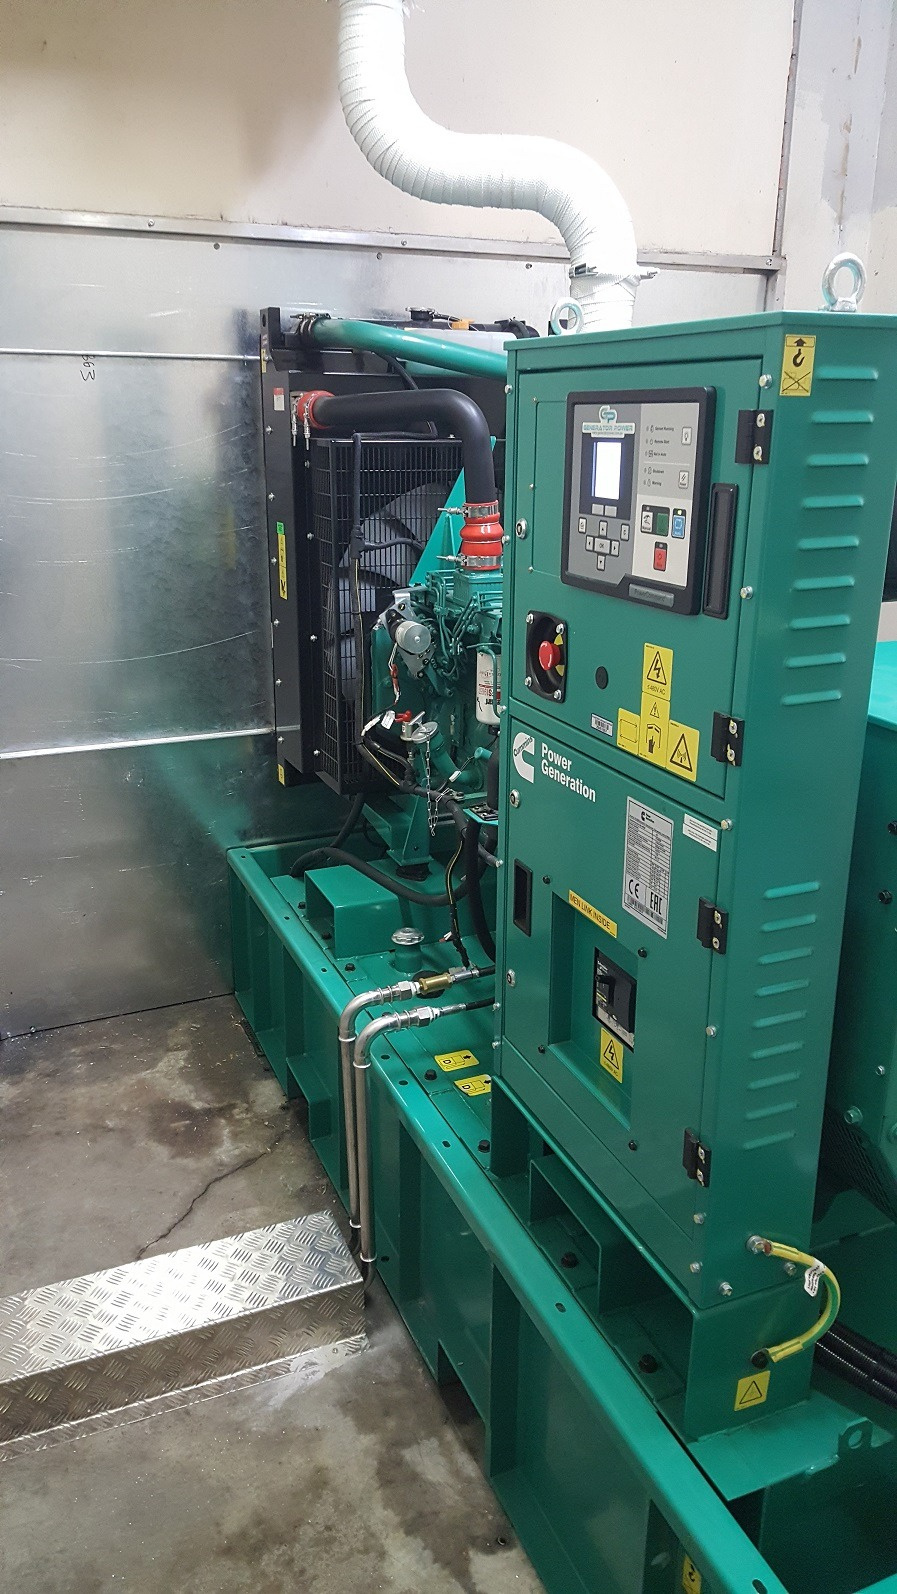 Cummins 150kVA Open Diesel Generator - Emergency Power Source